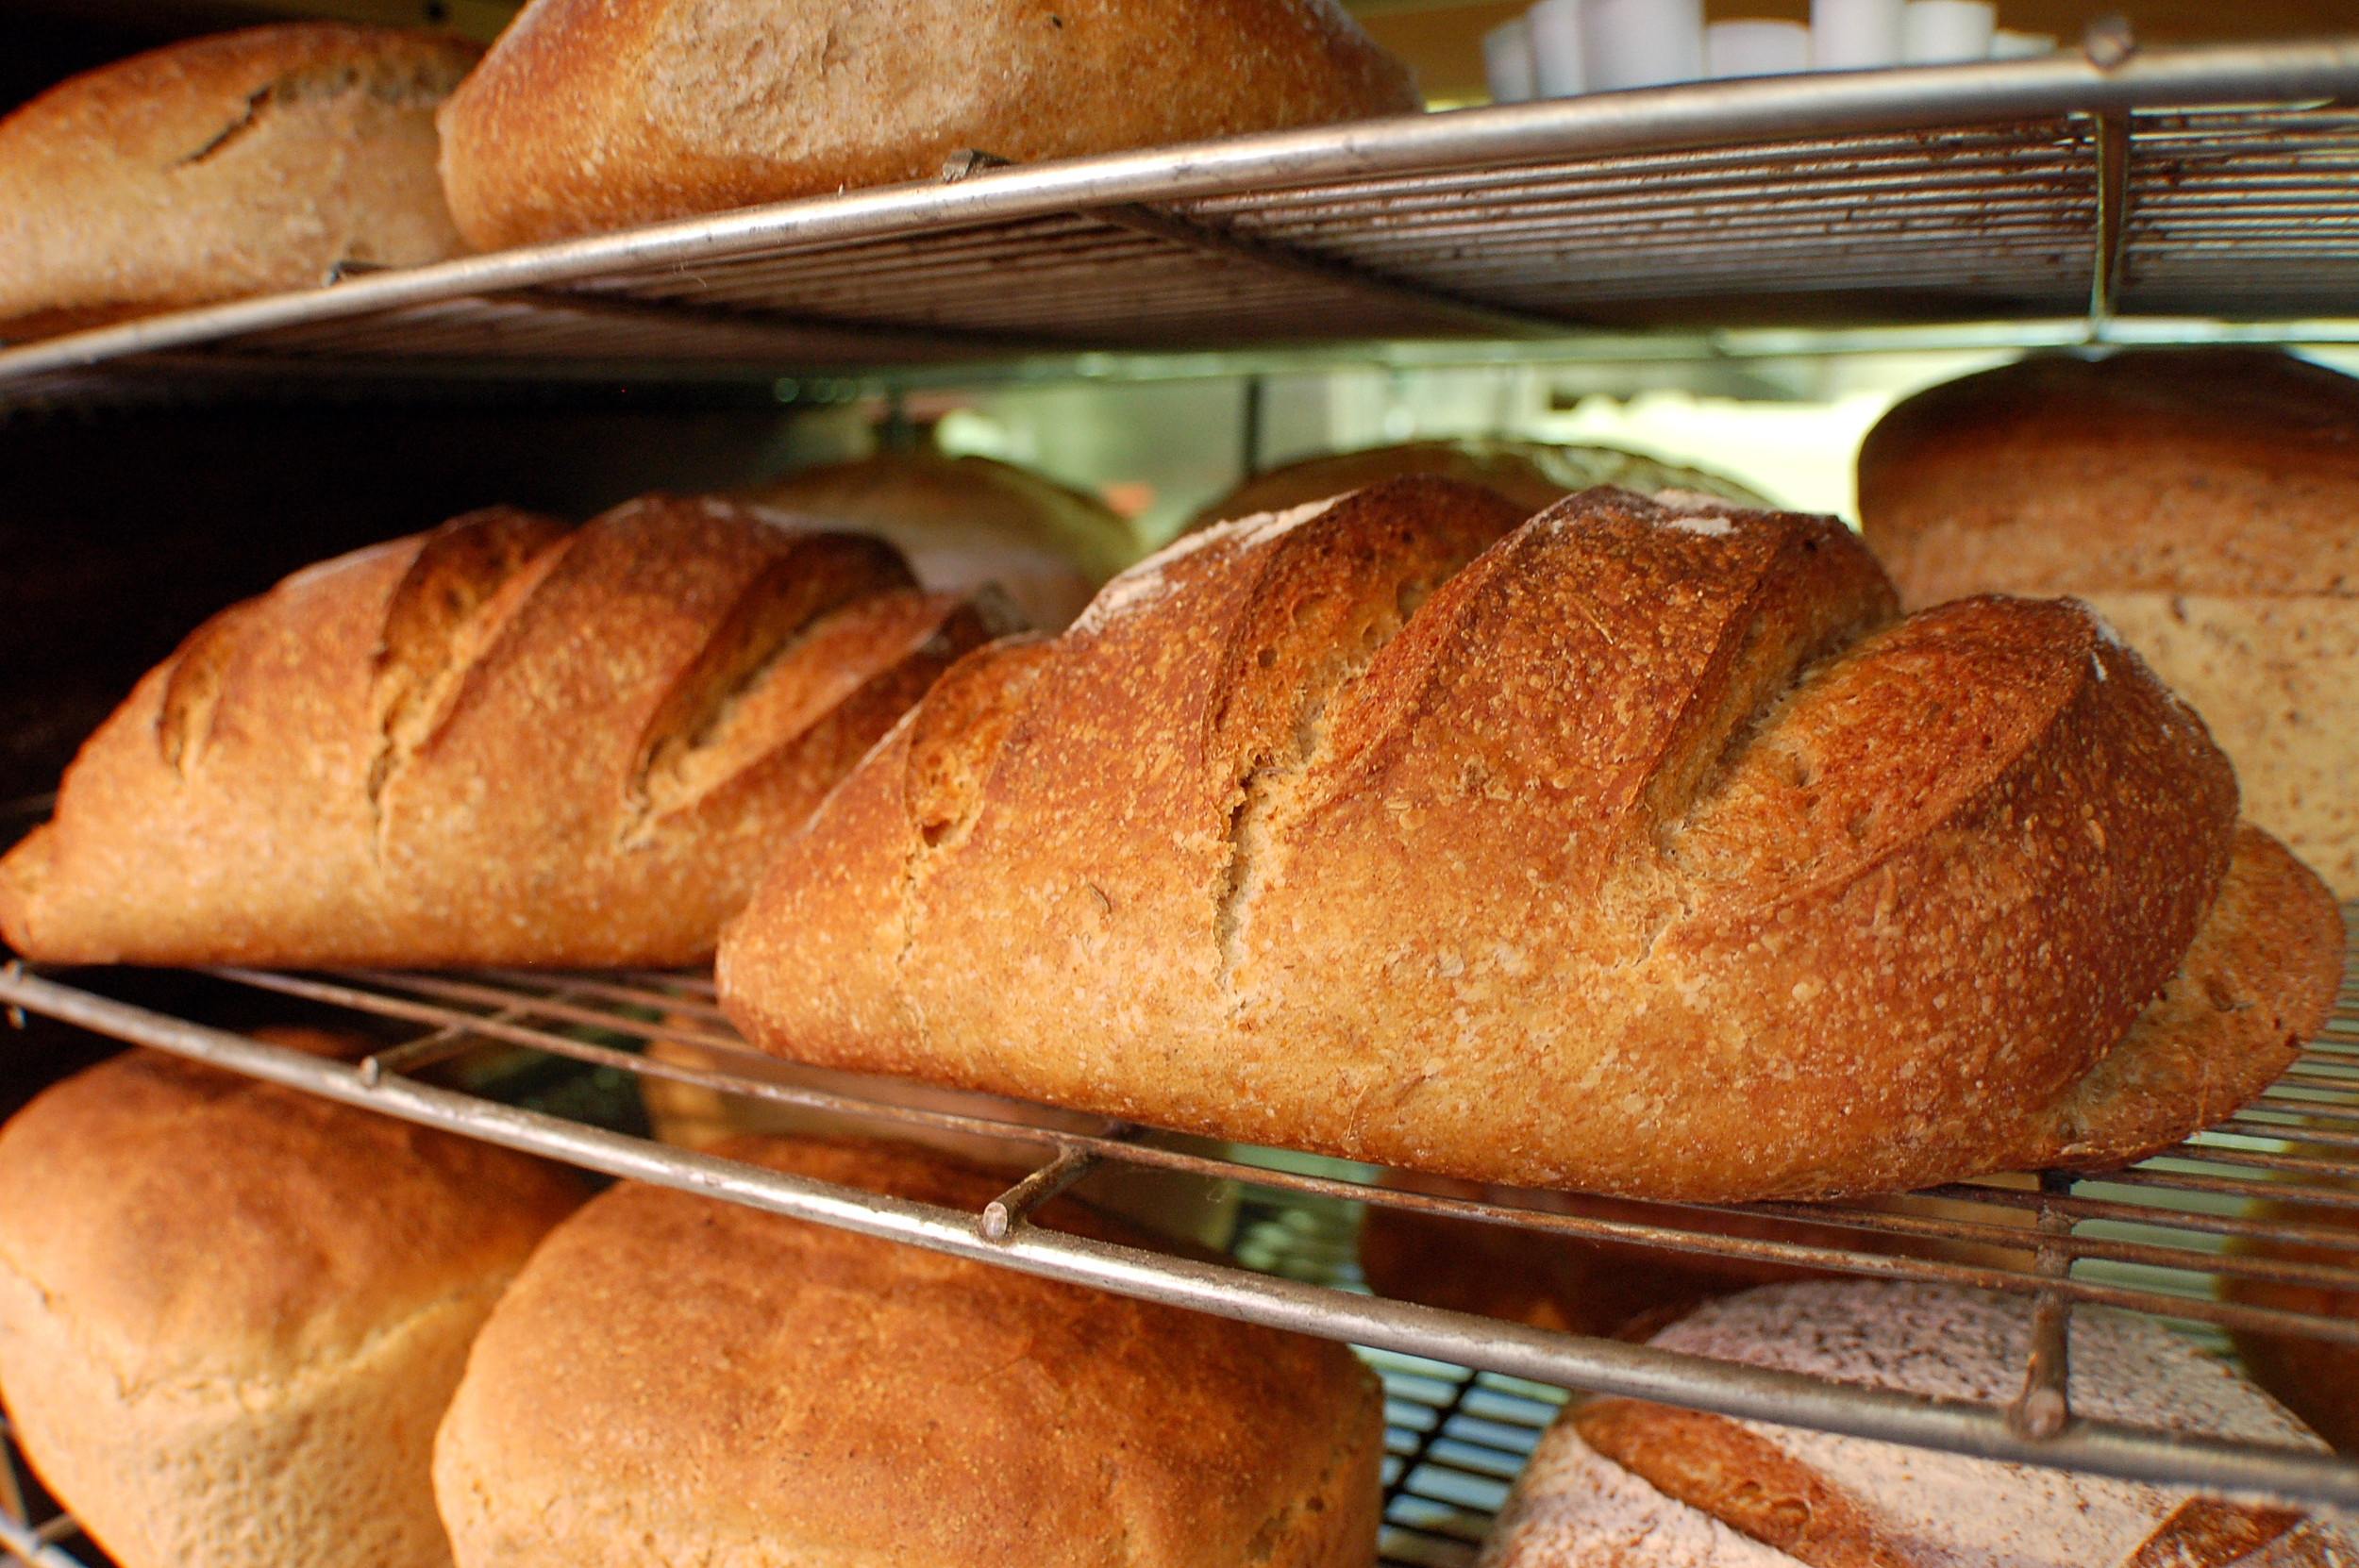 Organic bread delivered daily